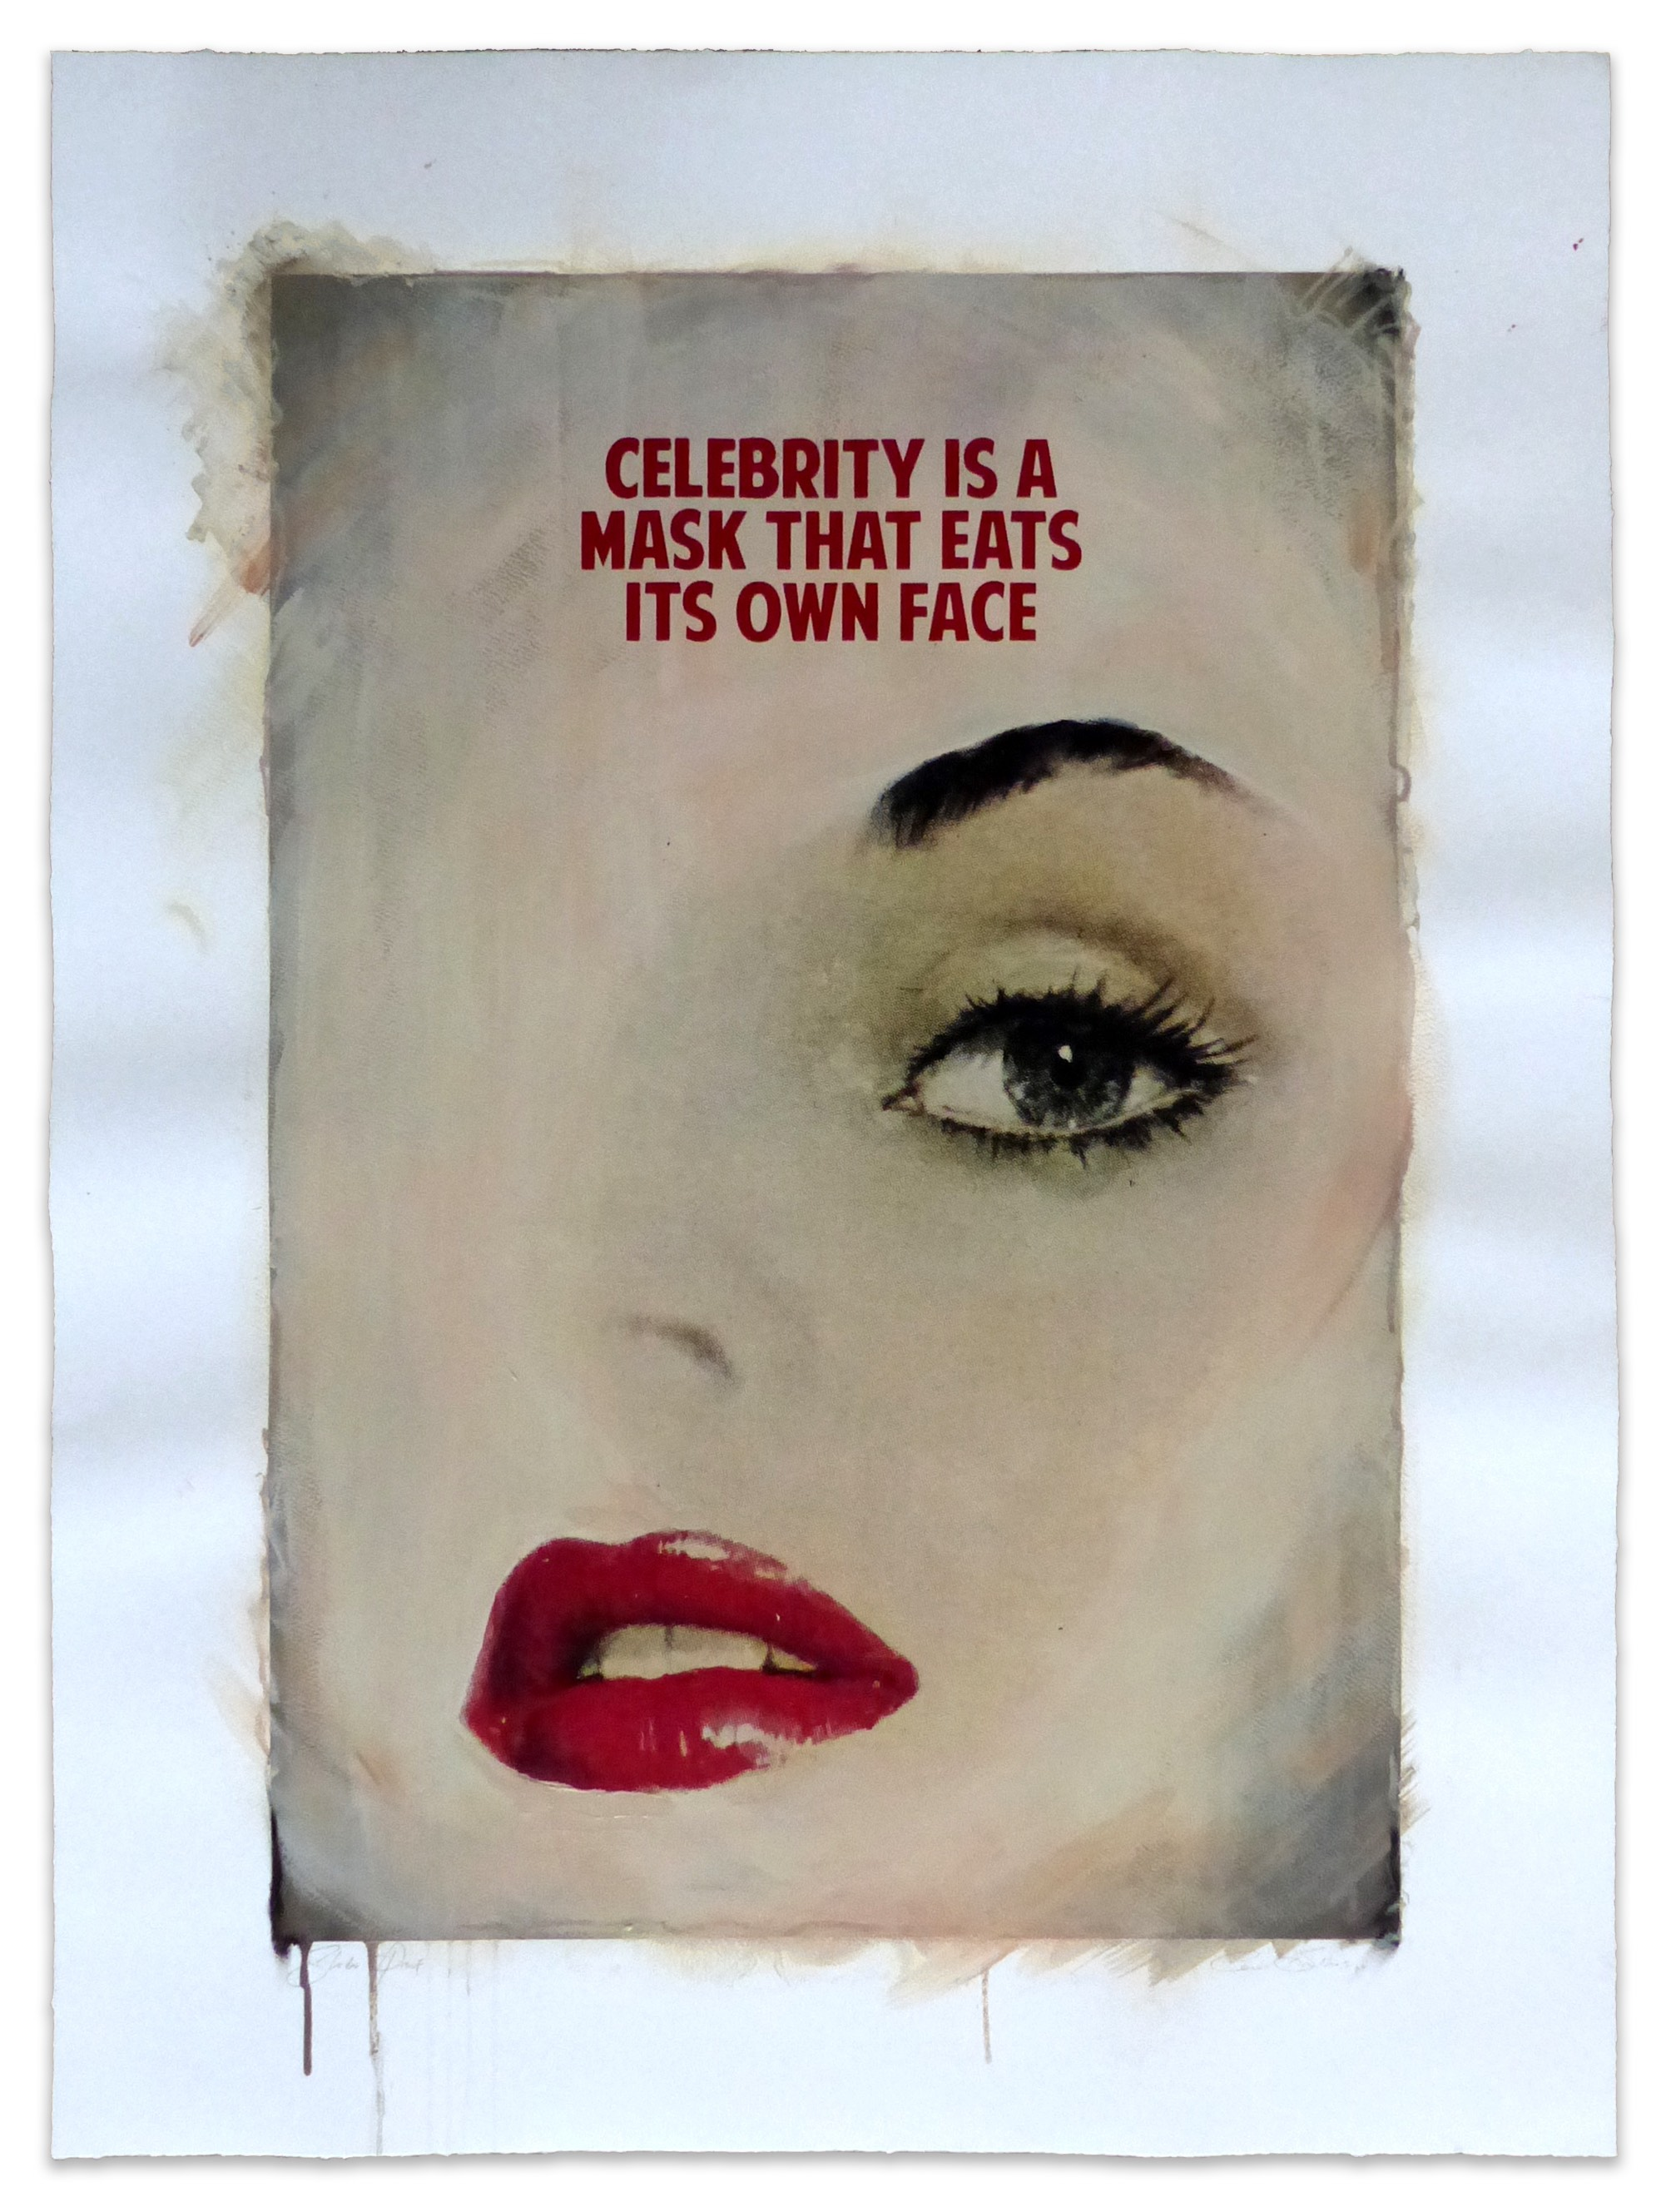 CELEBRITY IS A MASK